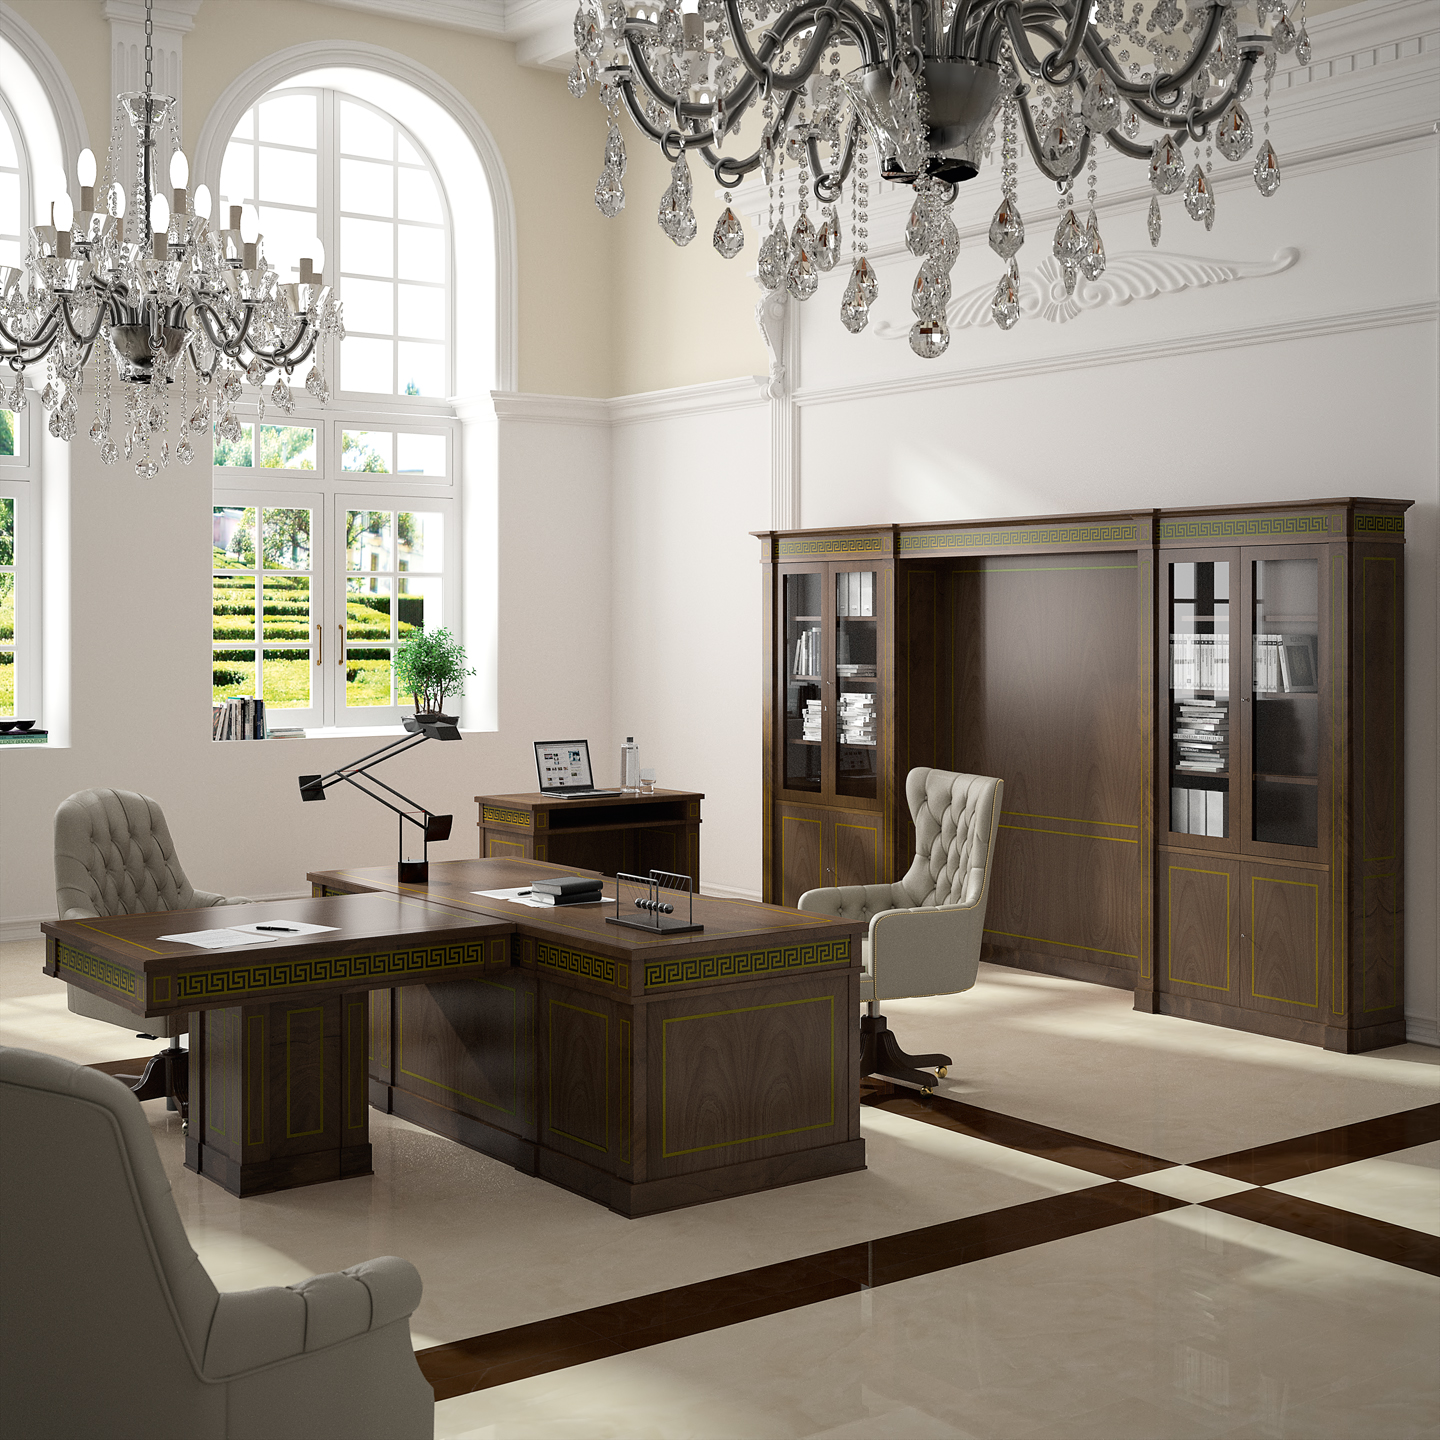 Art luxe from ofifran the refined choice for your office for Casa moderna oficina